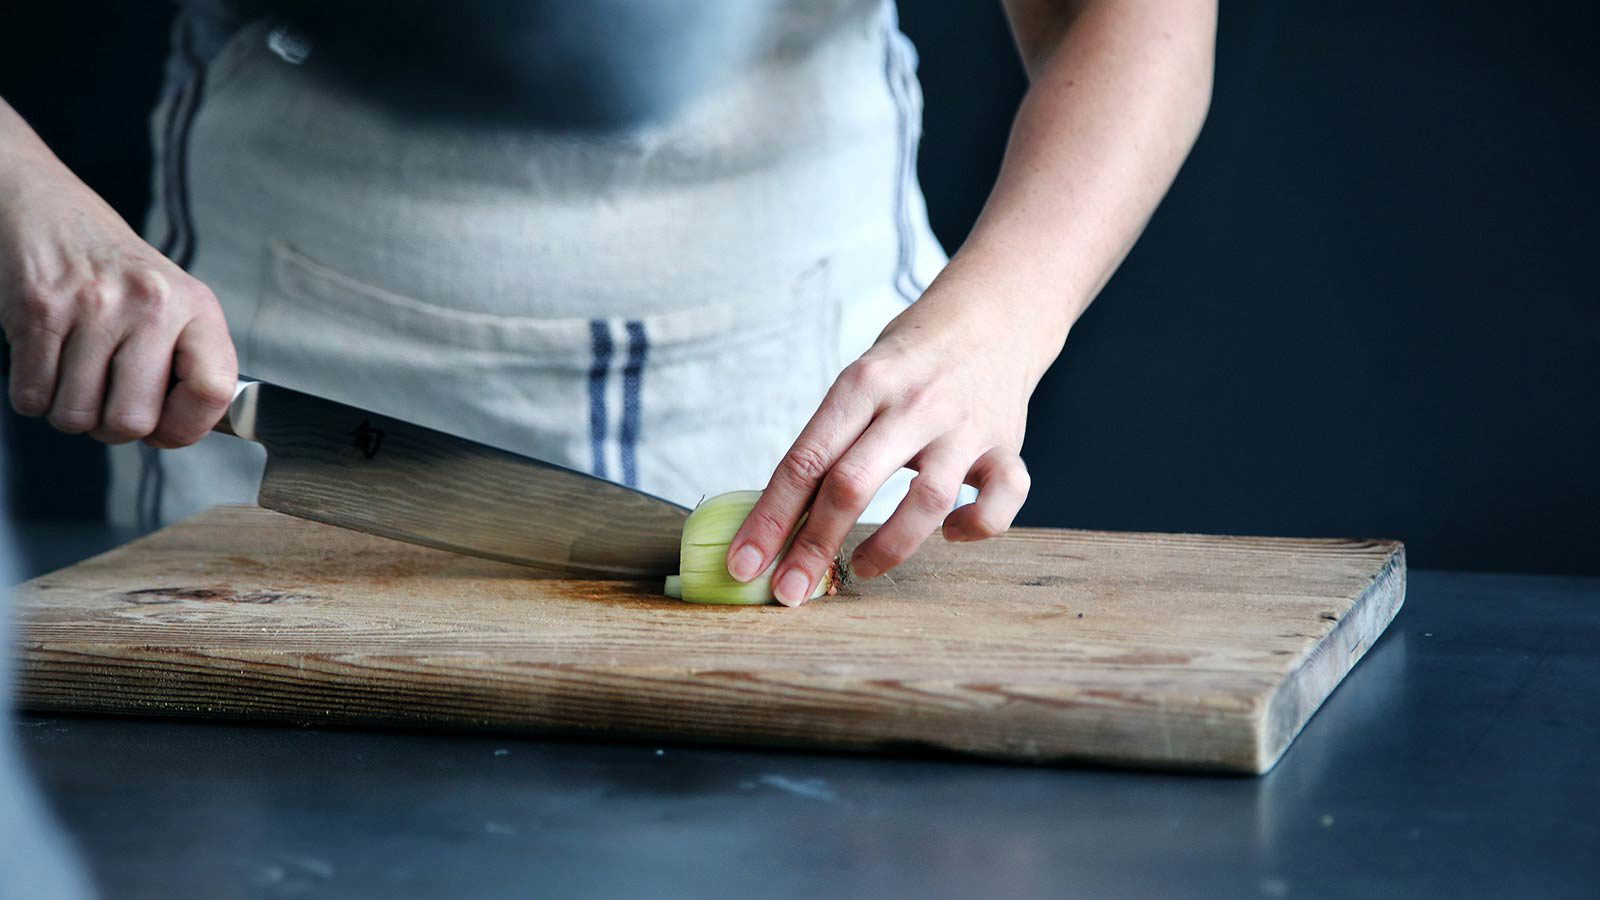 Person in apron cutting onion on cutting board.